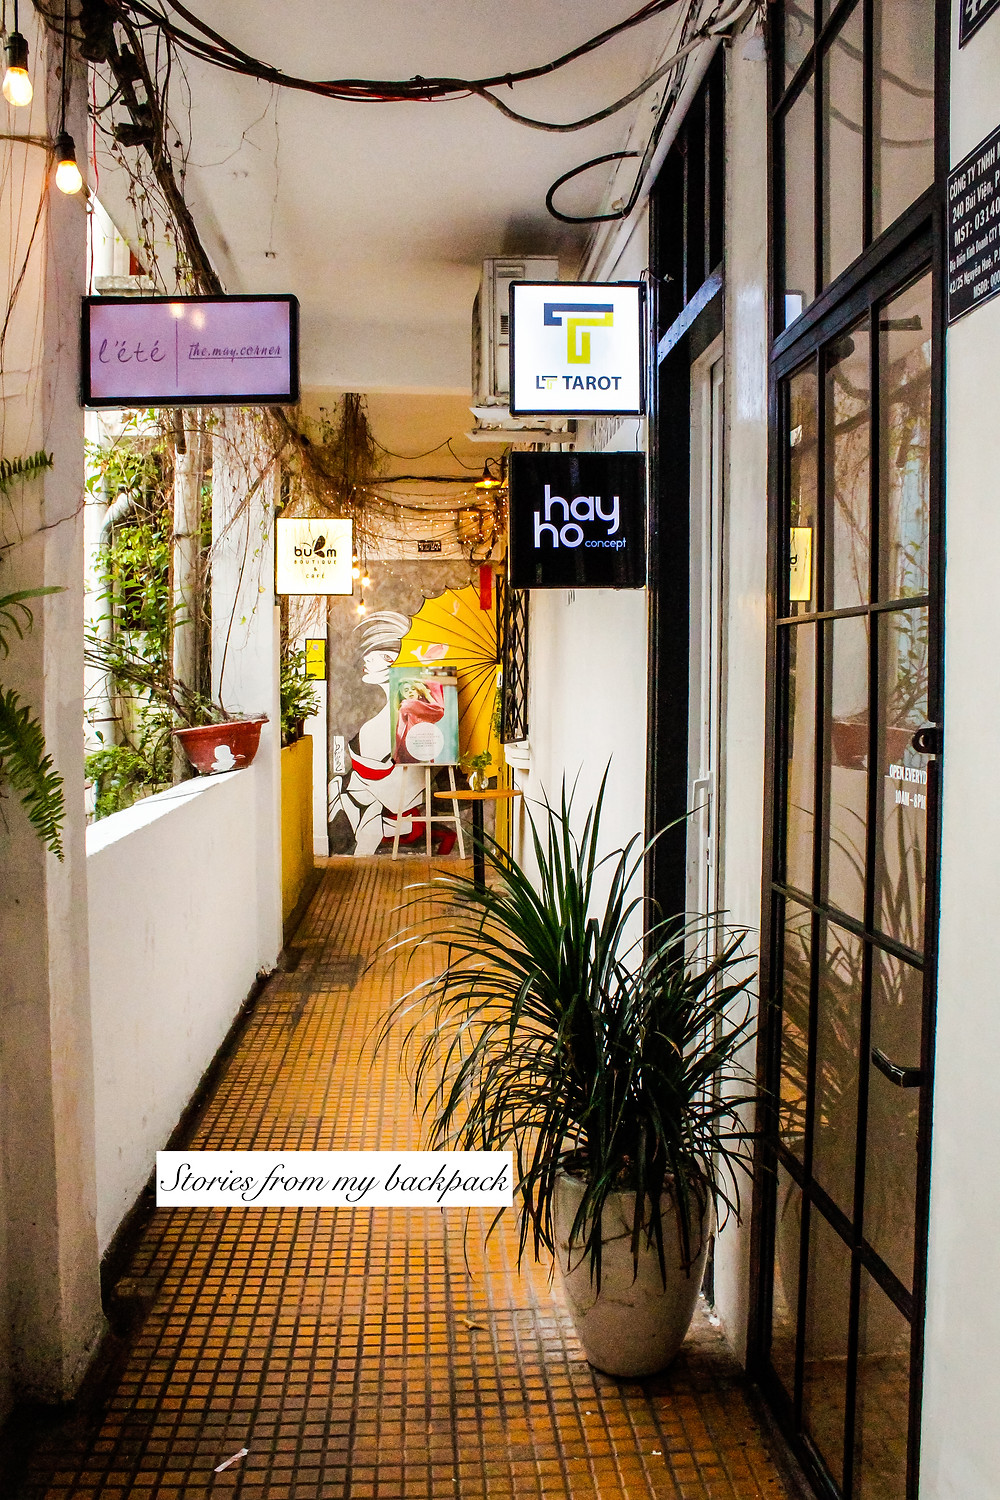 Cafe apartments, old apartments of ho Chi Minh city, best cafes of ho Chi Minh city, Saigon things to do, ho Chi Minh city things to do